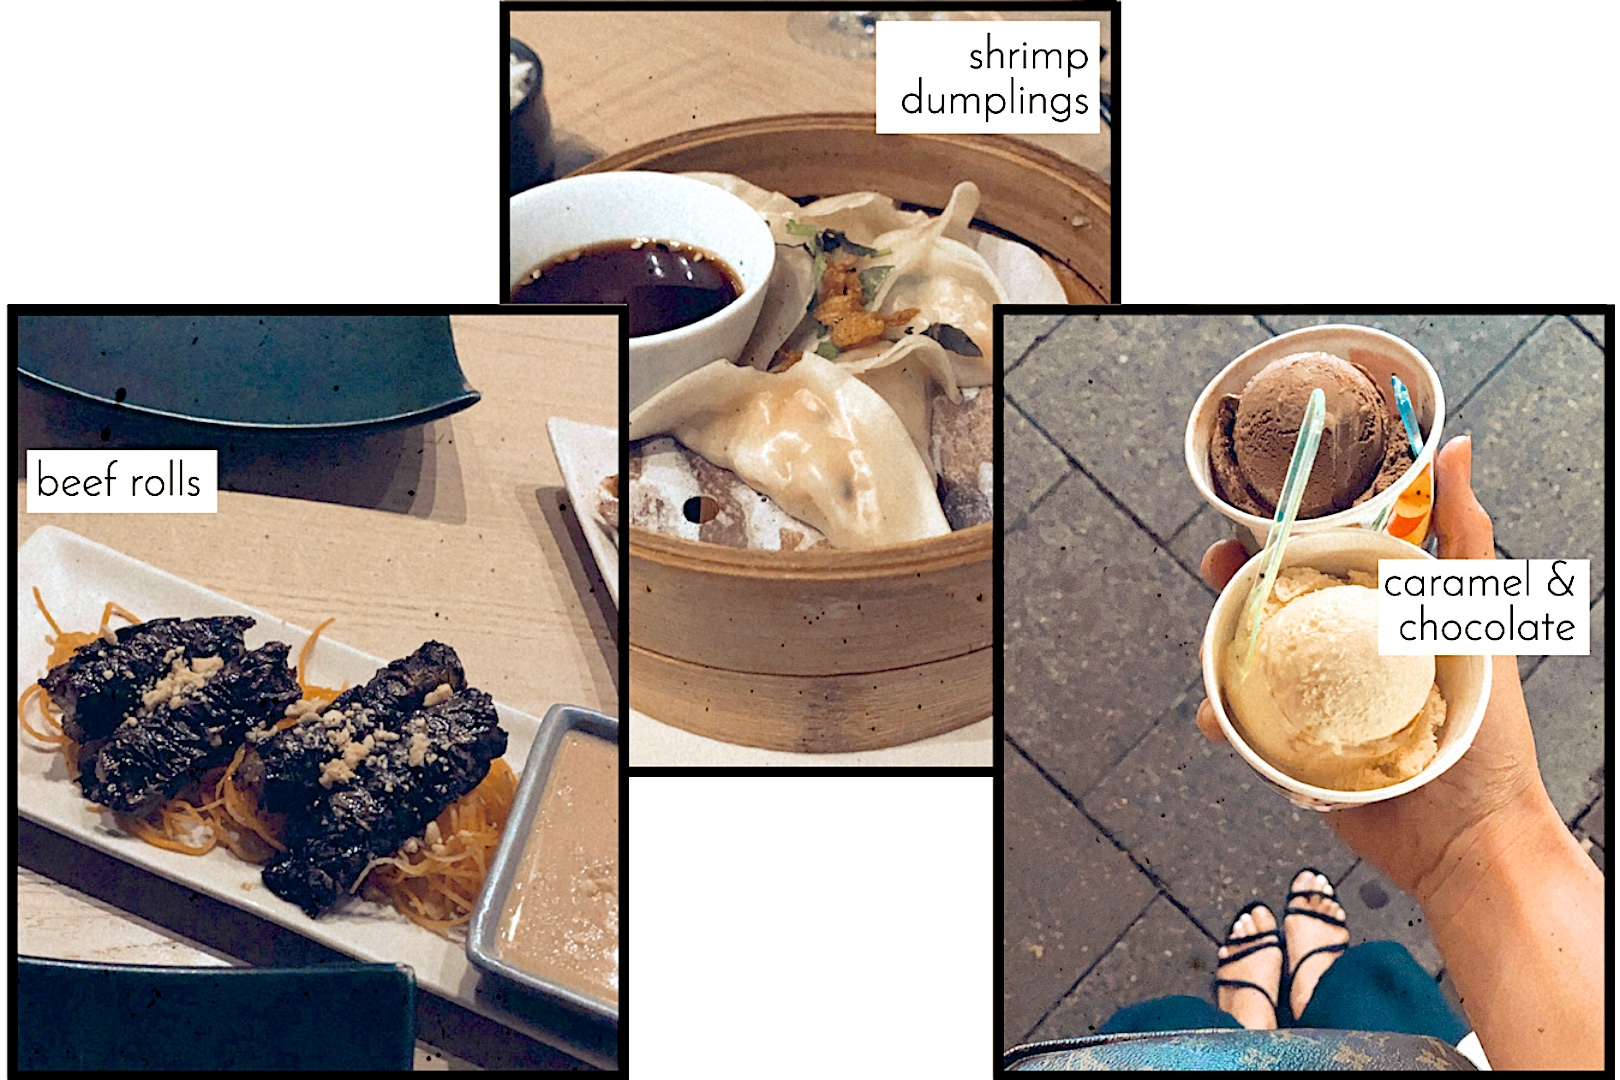 Date Night. Fashion and Style Blog Girl from Heartfelt Hunt. Girl with blonde low ponytail wearing an oversized blazer, bandeau top, black pants, Louis Vuitton pochette and strappy sandals. Summer Looks and Styles.